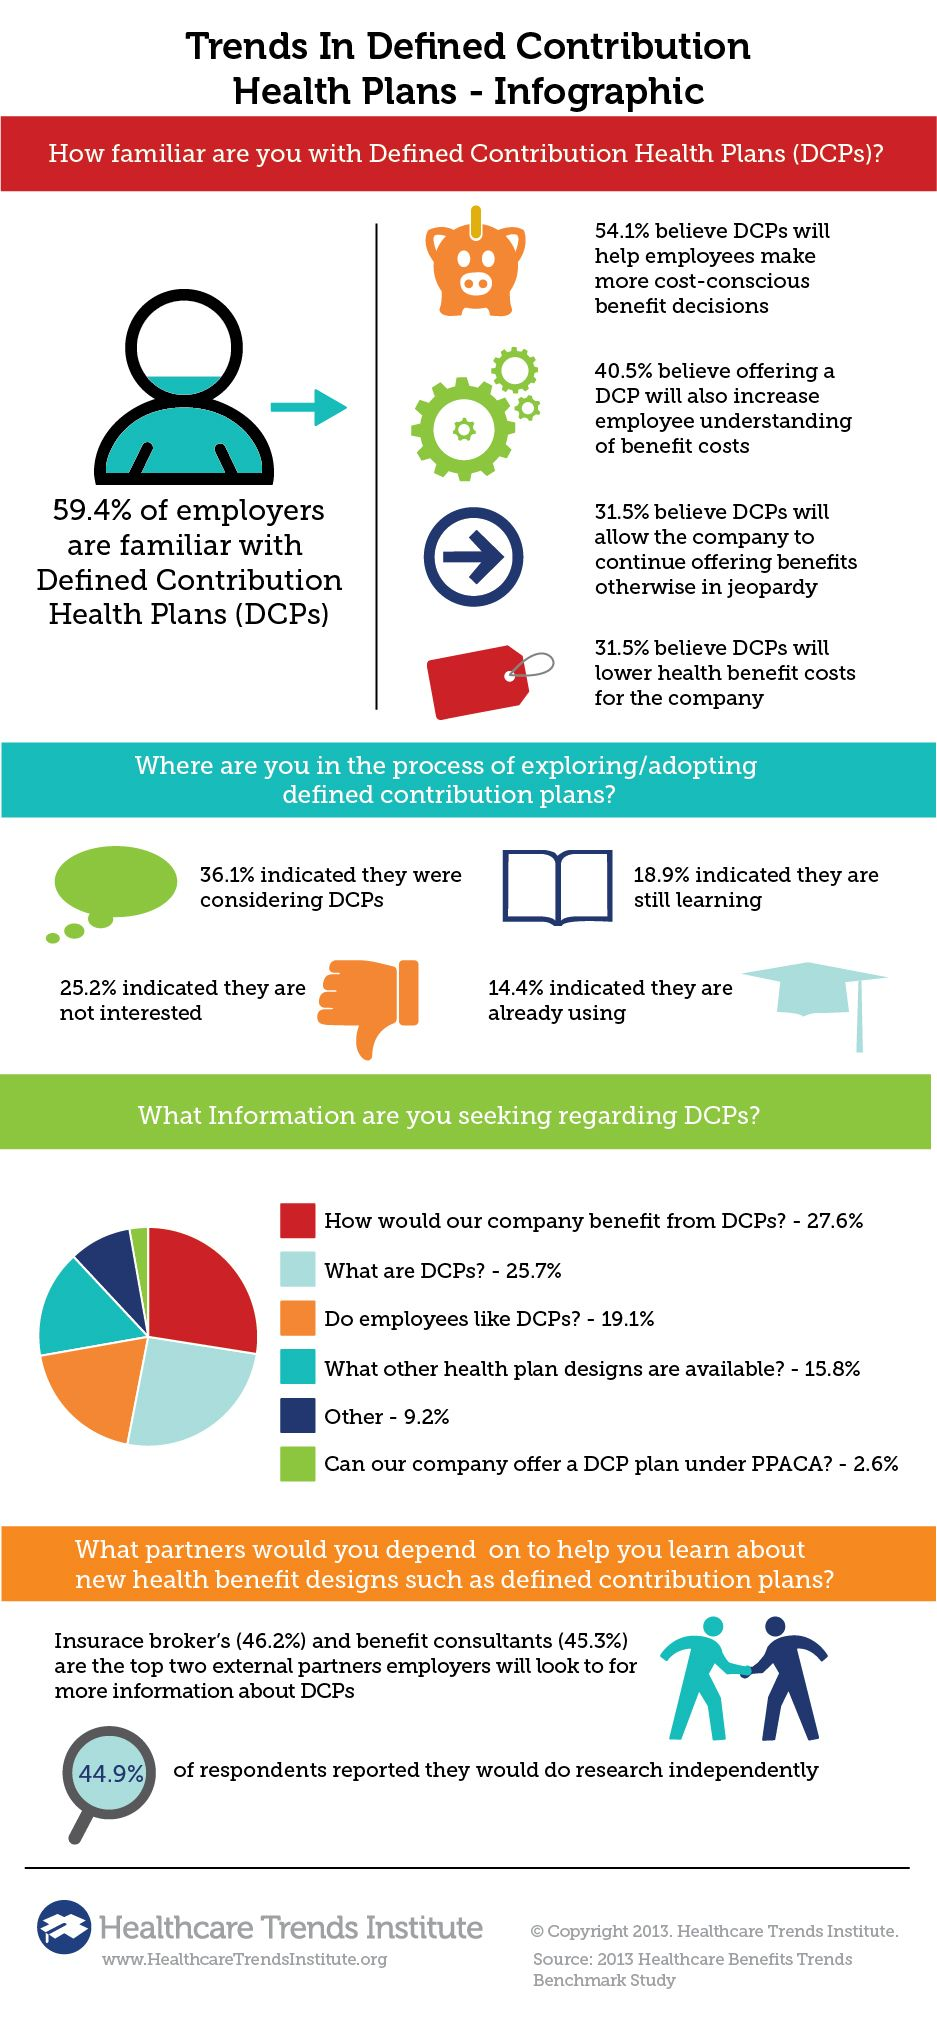 Infographic Trends In Defined Contribution Plans Dcps Health Plan Health Insurance Infographic Health Care Reform